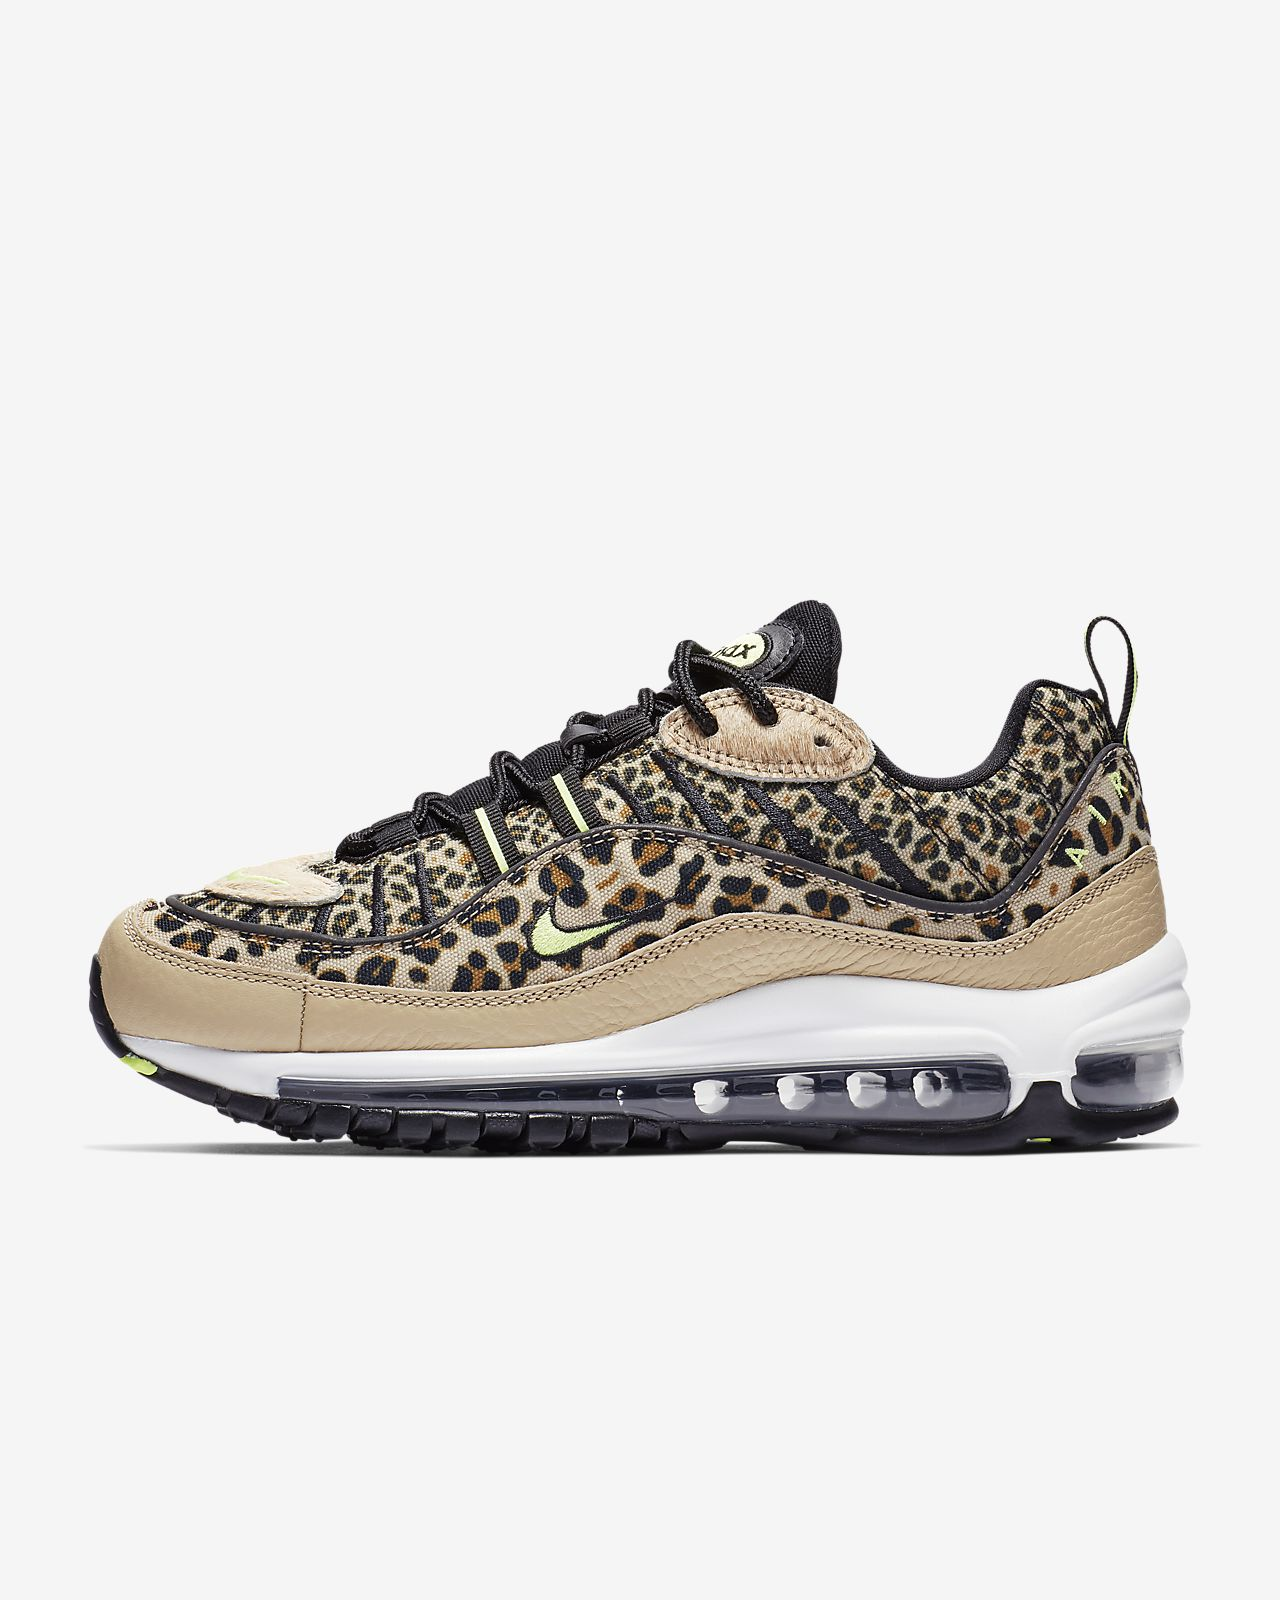 designer fashion 4d84c 1e62d Nike Air Max 98 Premium Animal